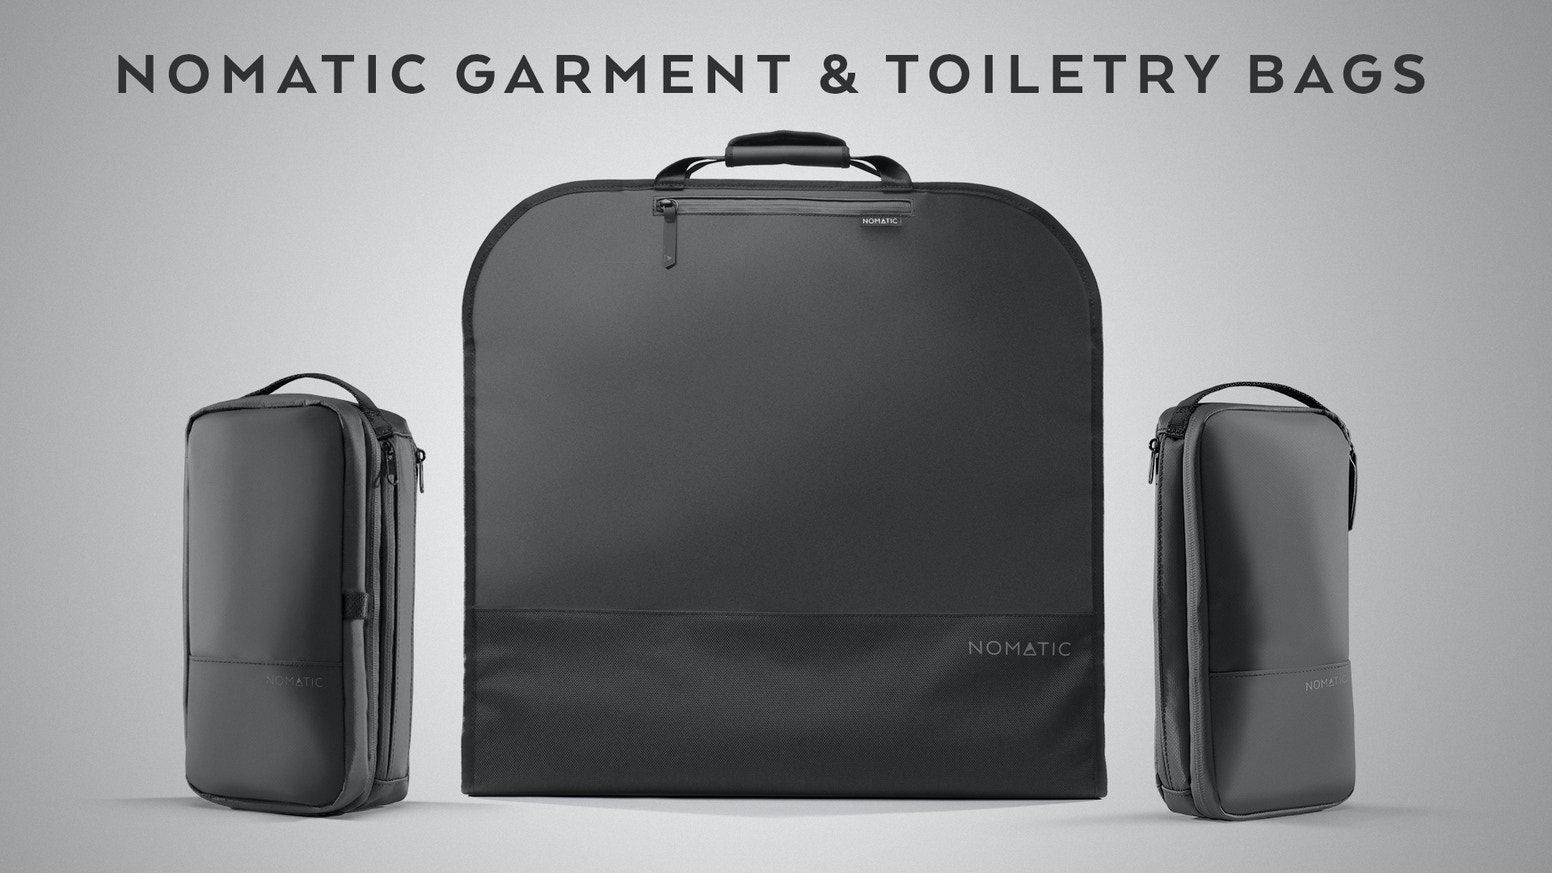 38ce2cc86911b The NOMATIC GARMENT   TOILETRY BAGS by NOMATIC — Kickstarter